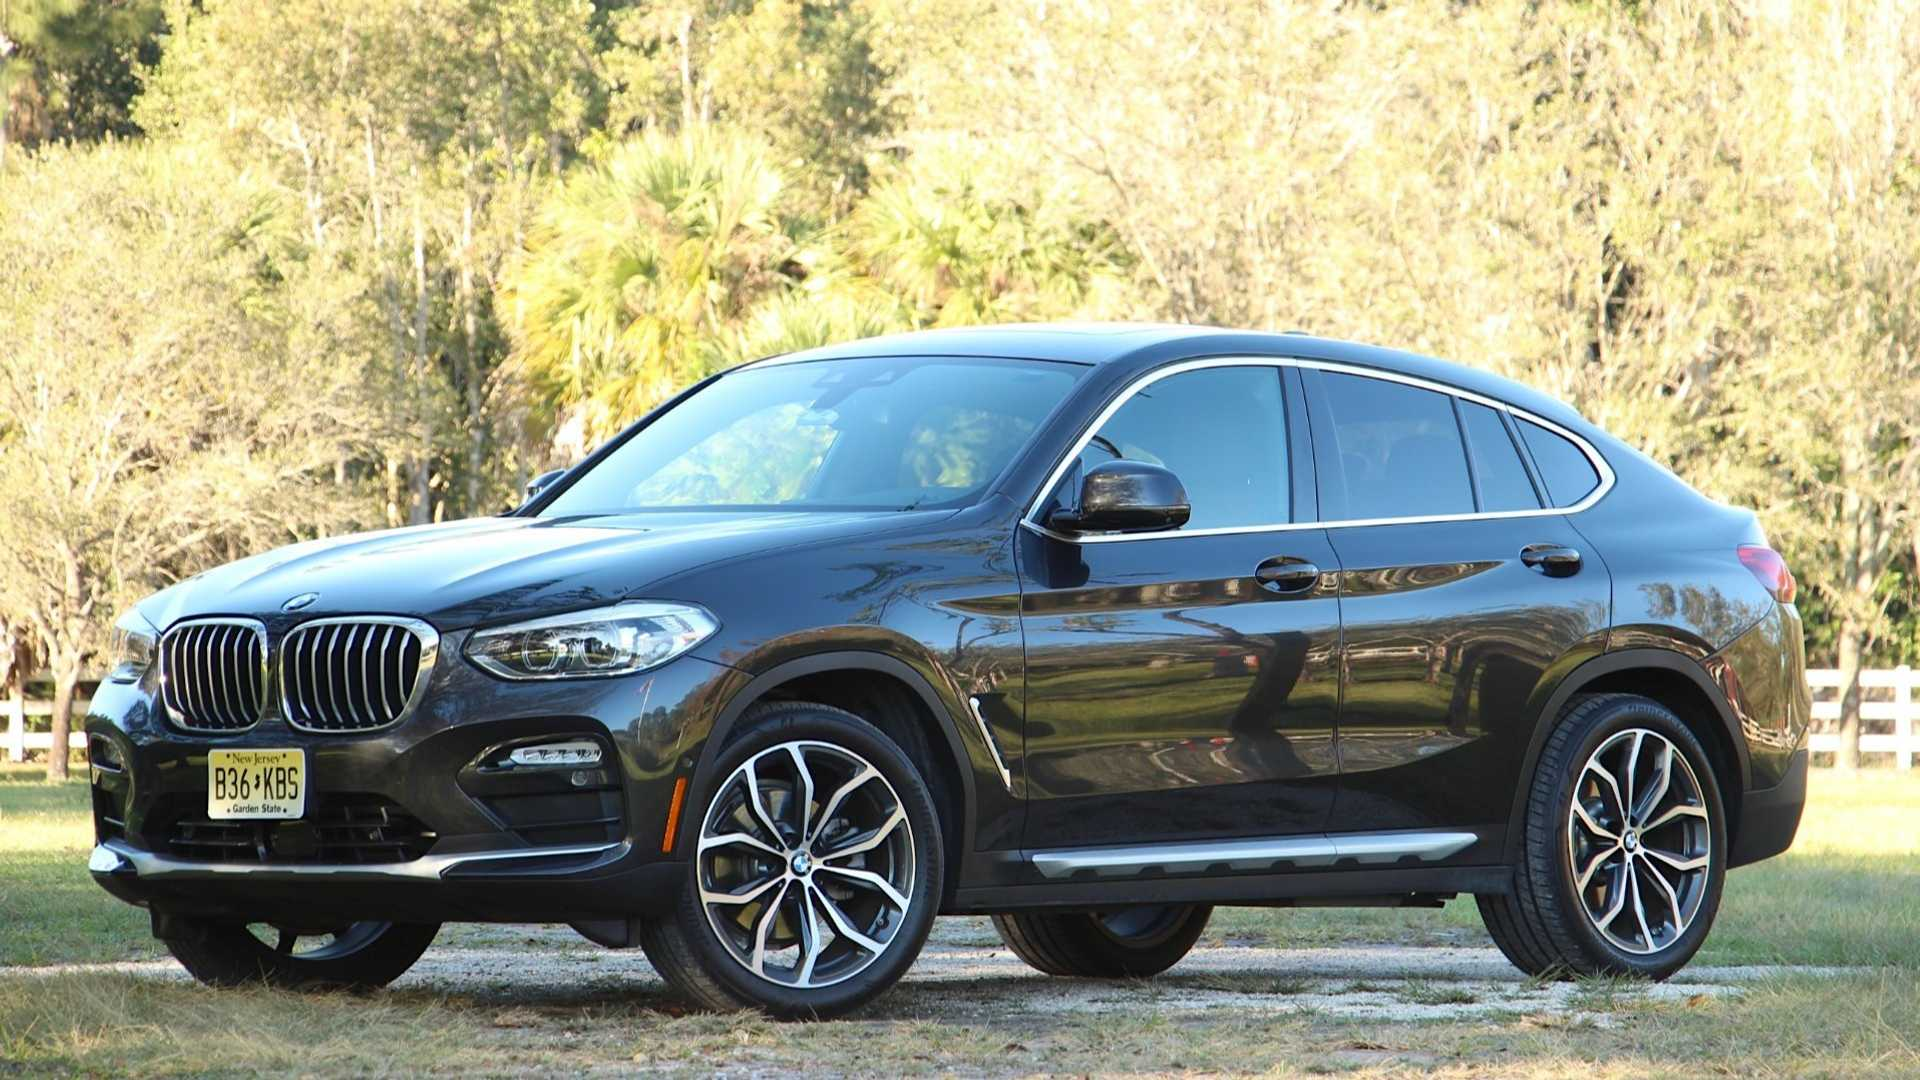 2020 Bmw X4 Update, Specs, And Engine >> 2019 Bmw X4 Xdrive30i Review Munich Mullet